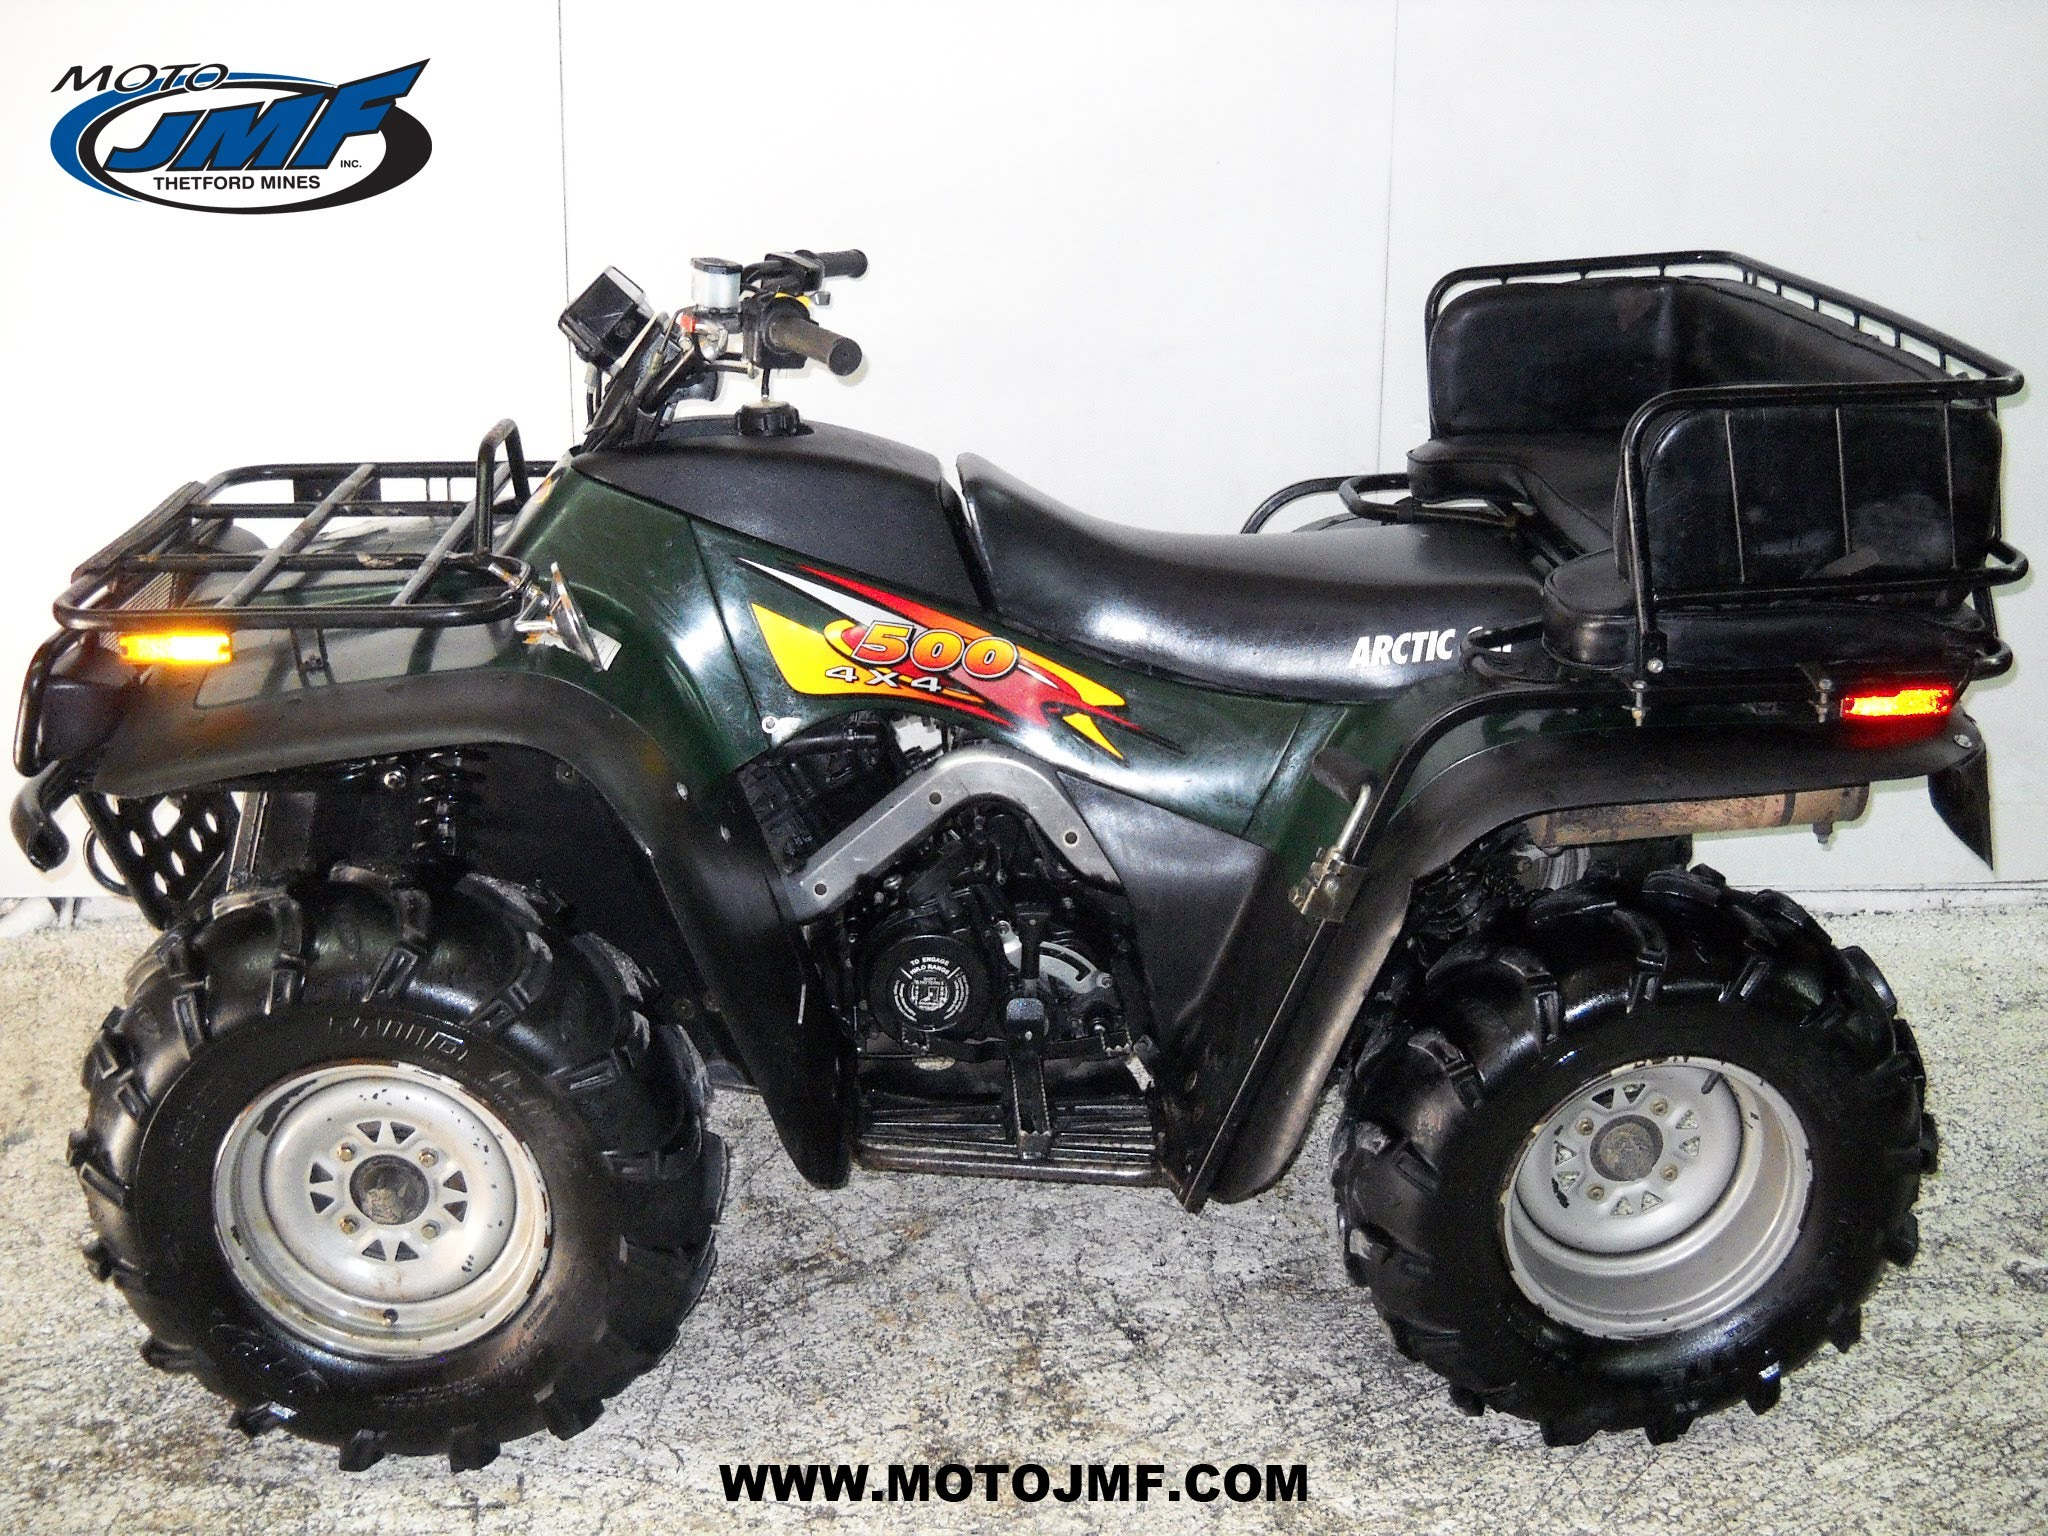 Arctic Cat 400 Atv Wiring Diagram For Schematic Diagrams 2001 Arctic Cat  250 Wiring Diagram Wiring Diagram 2006 Arctic Cat 400 4wd